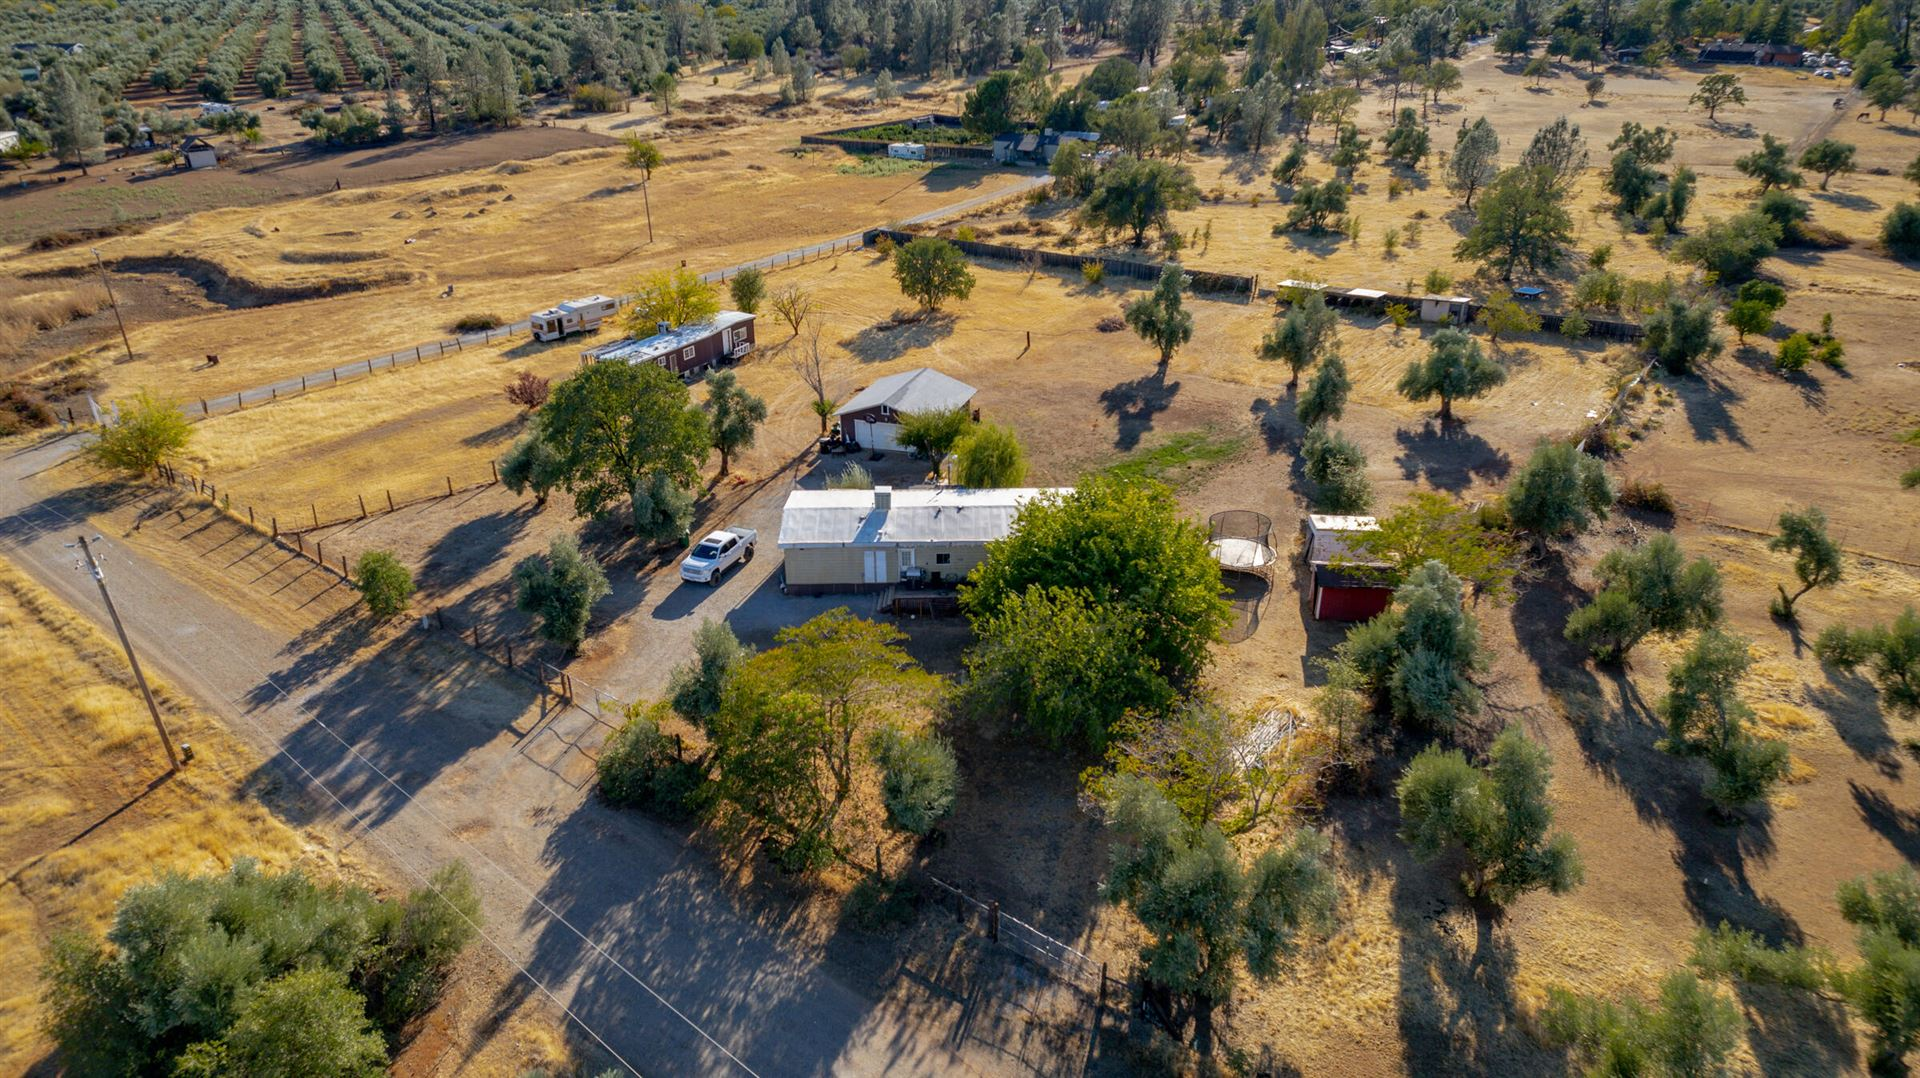 Photo of 5830 Sherry Ln, Anderson, CA 96007 (MLS # 21-4703)